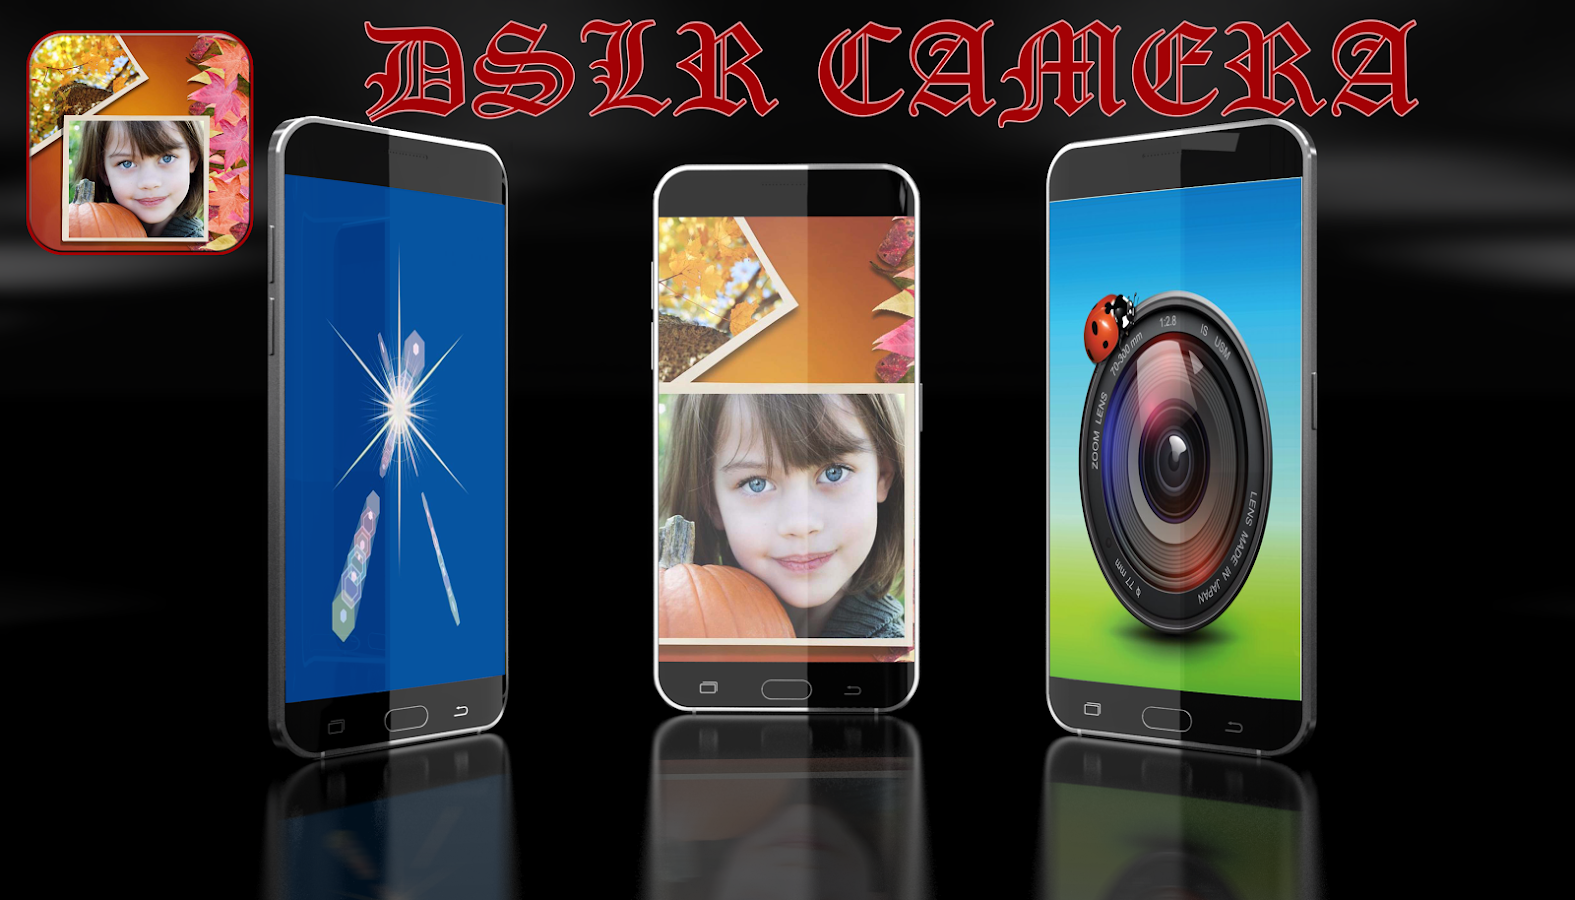 Camera Dslr Camera Effects dslr camera effect android apps on google play screenshot